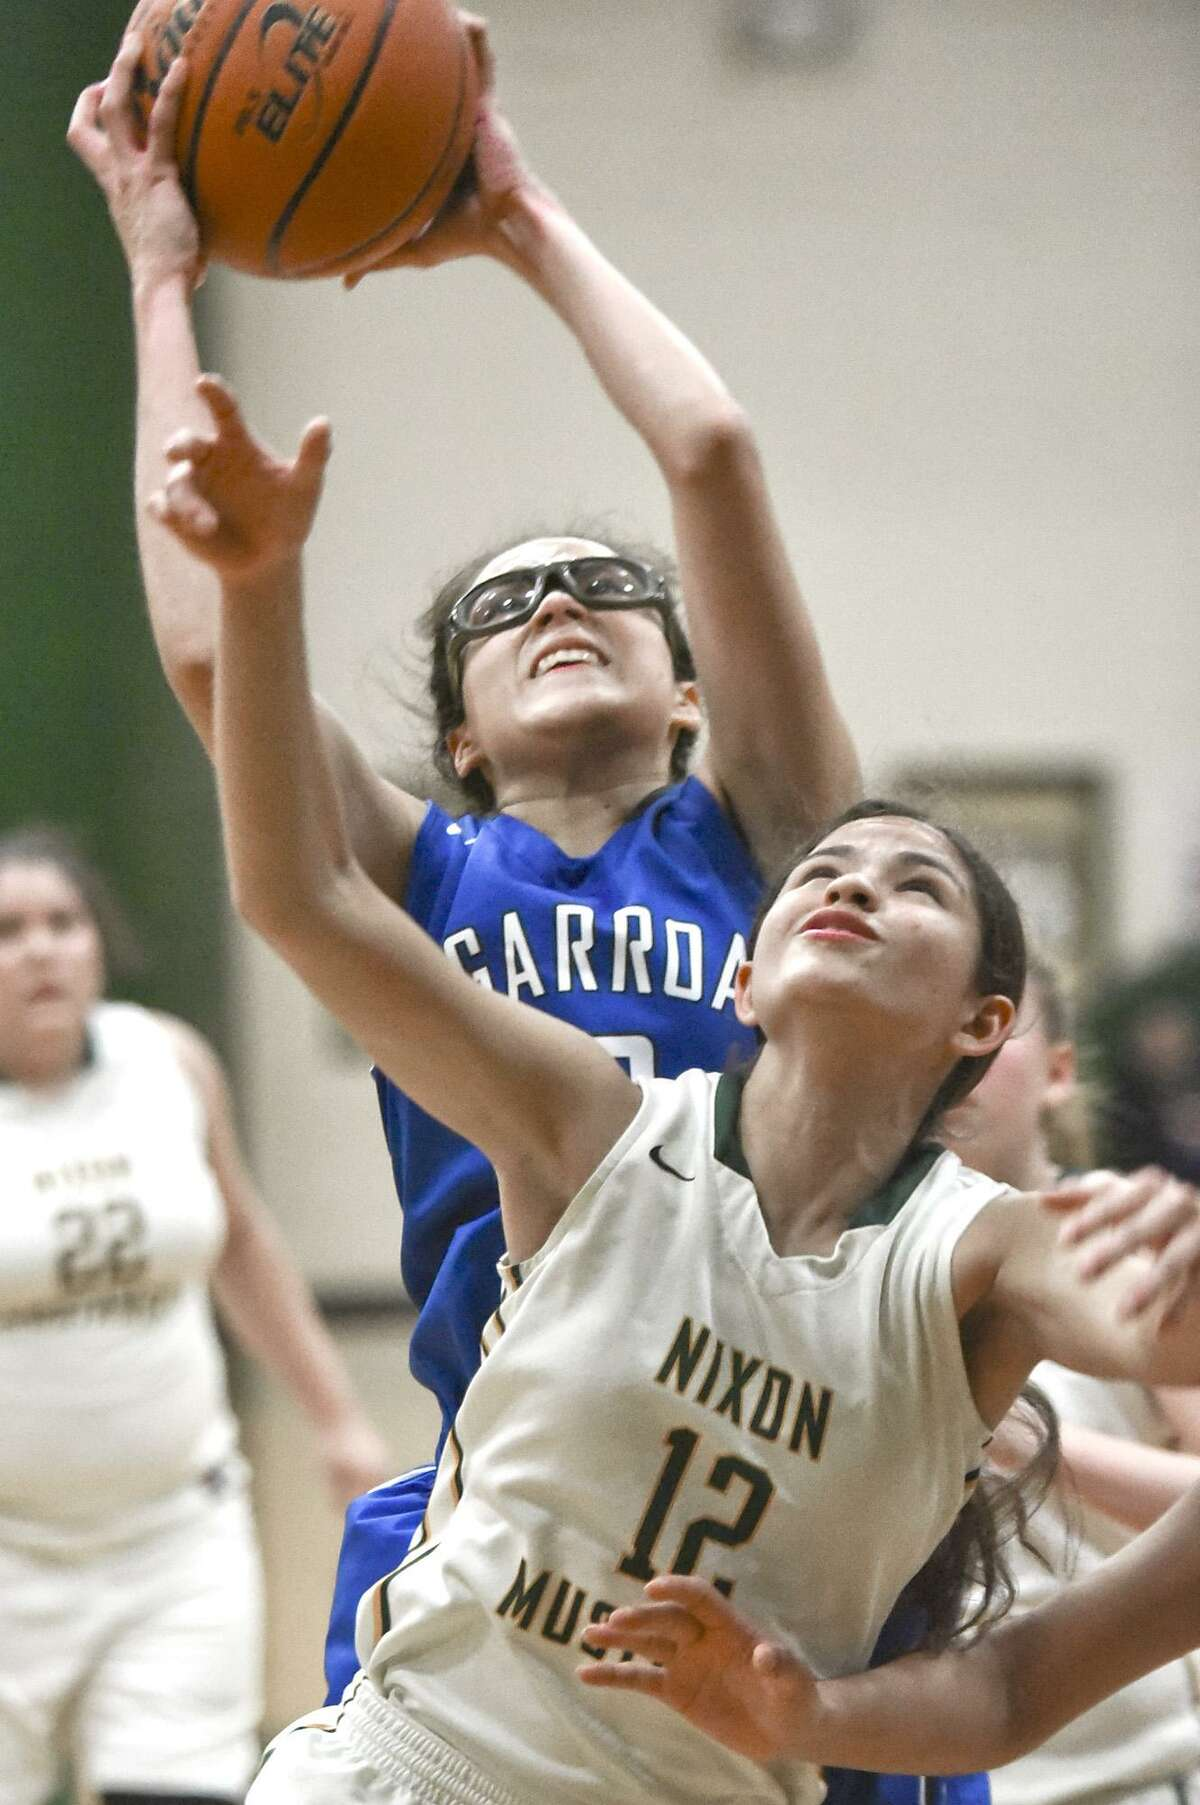 Leslie Alvarado sank two free throws late to help Cigarroa win 51-47 over Nixon for its 30th straight district win.